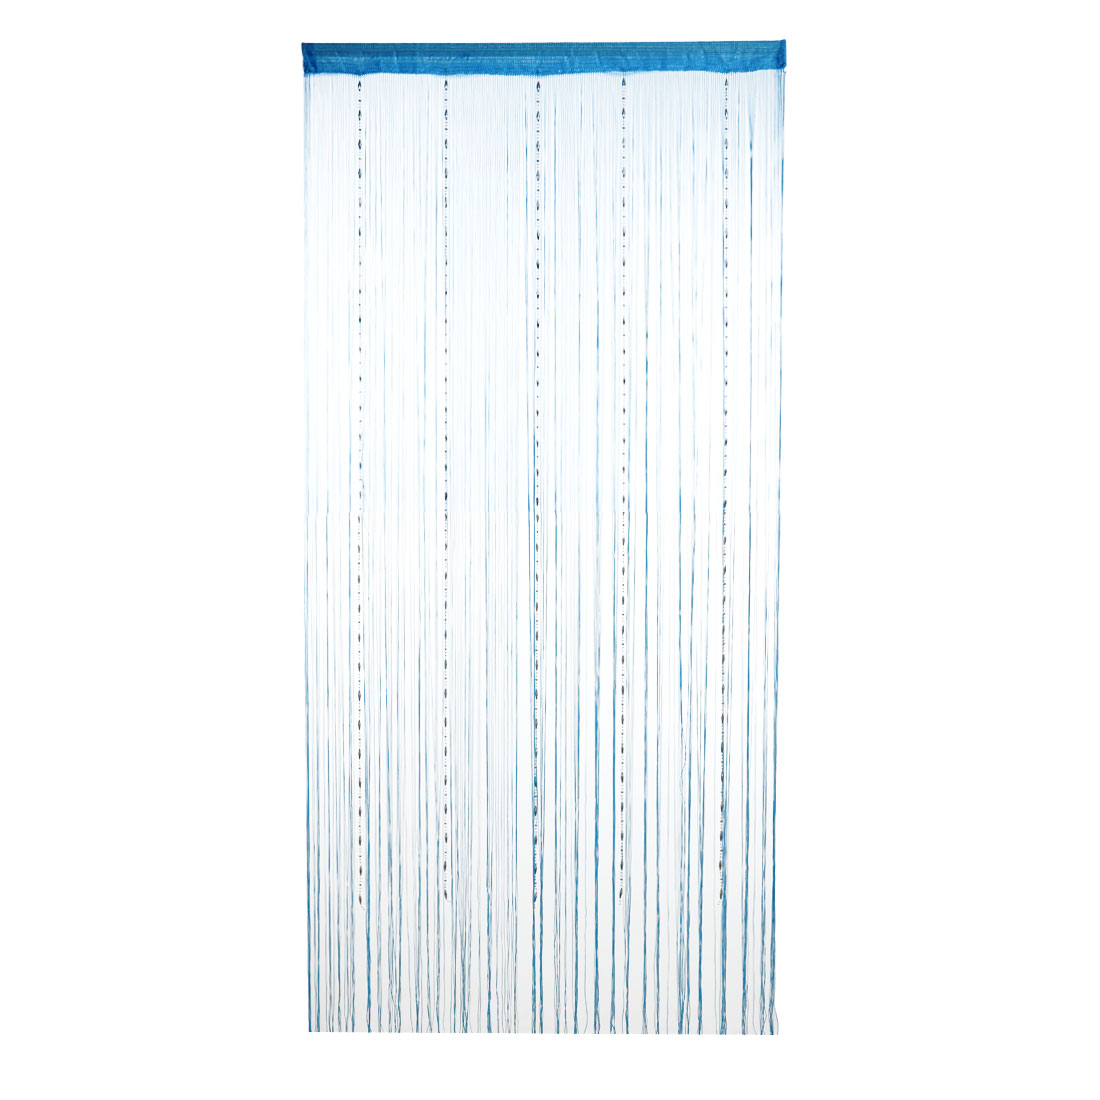 Dew Drop Beaded Chain String Curtains Voile Net Panels Screen Room Sky Blue